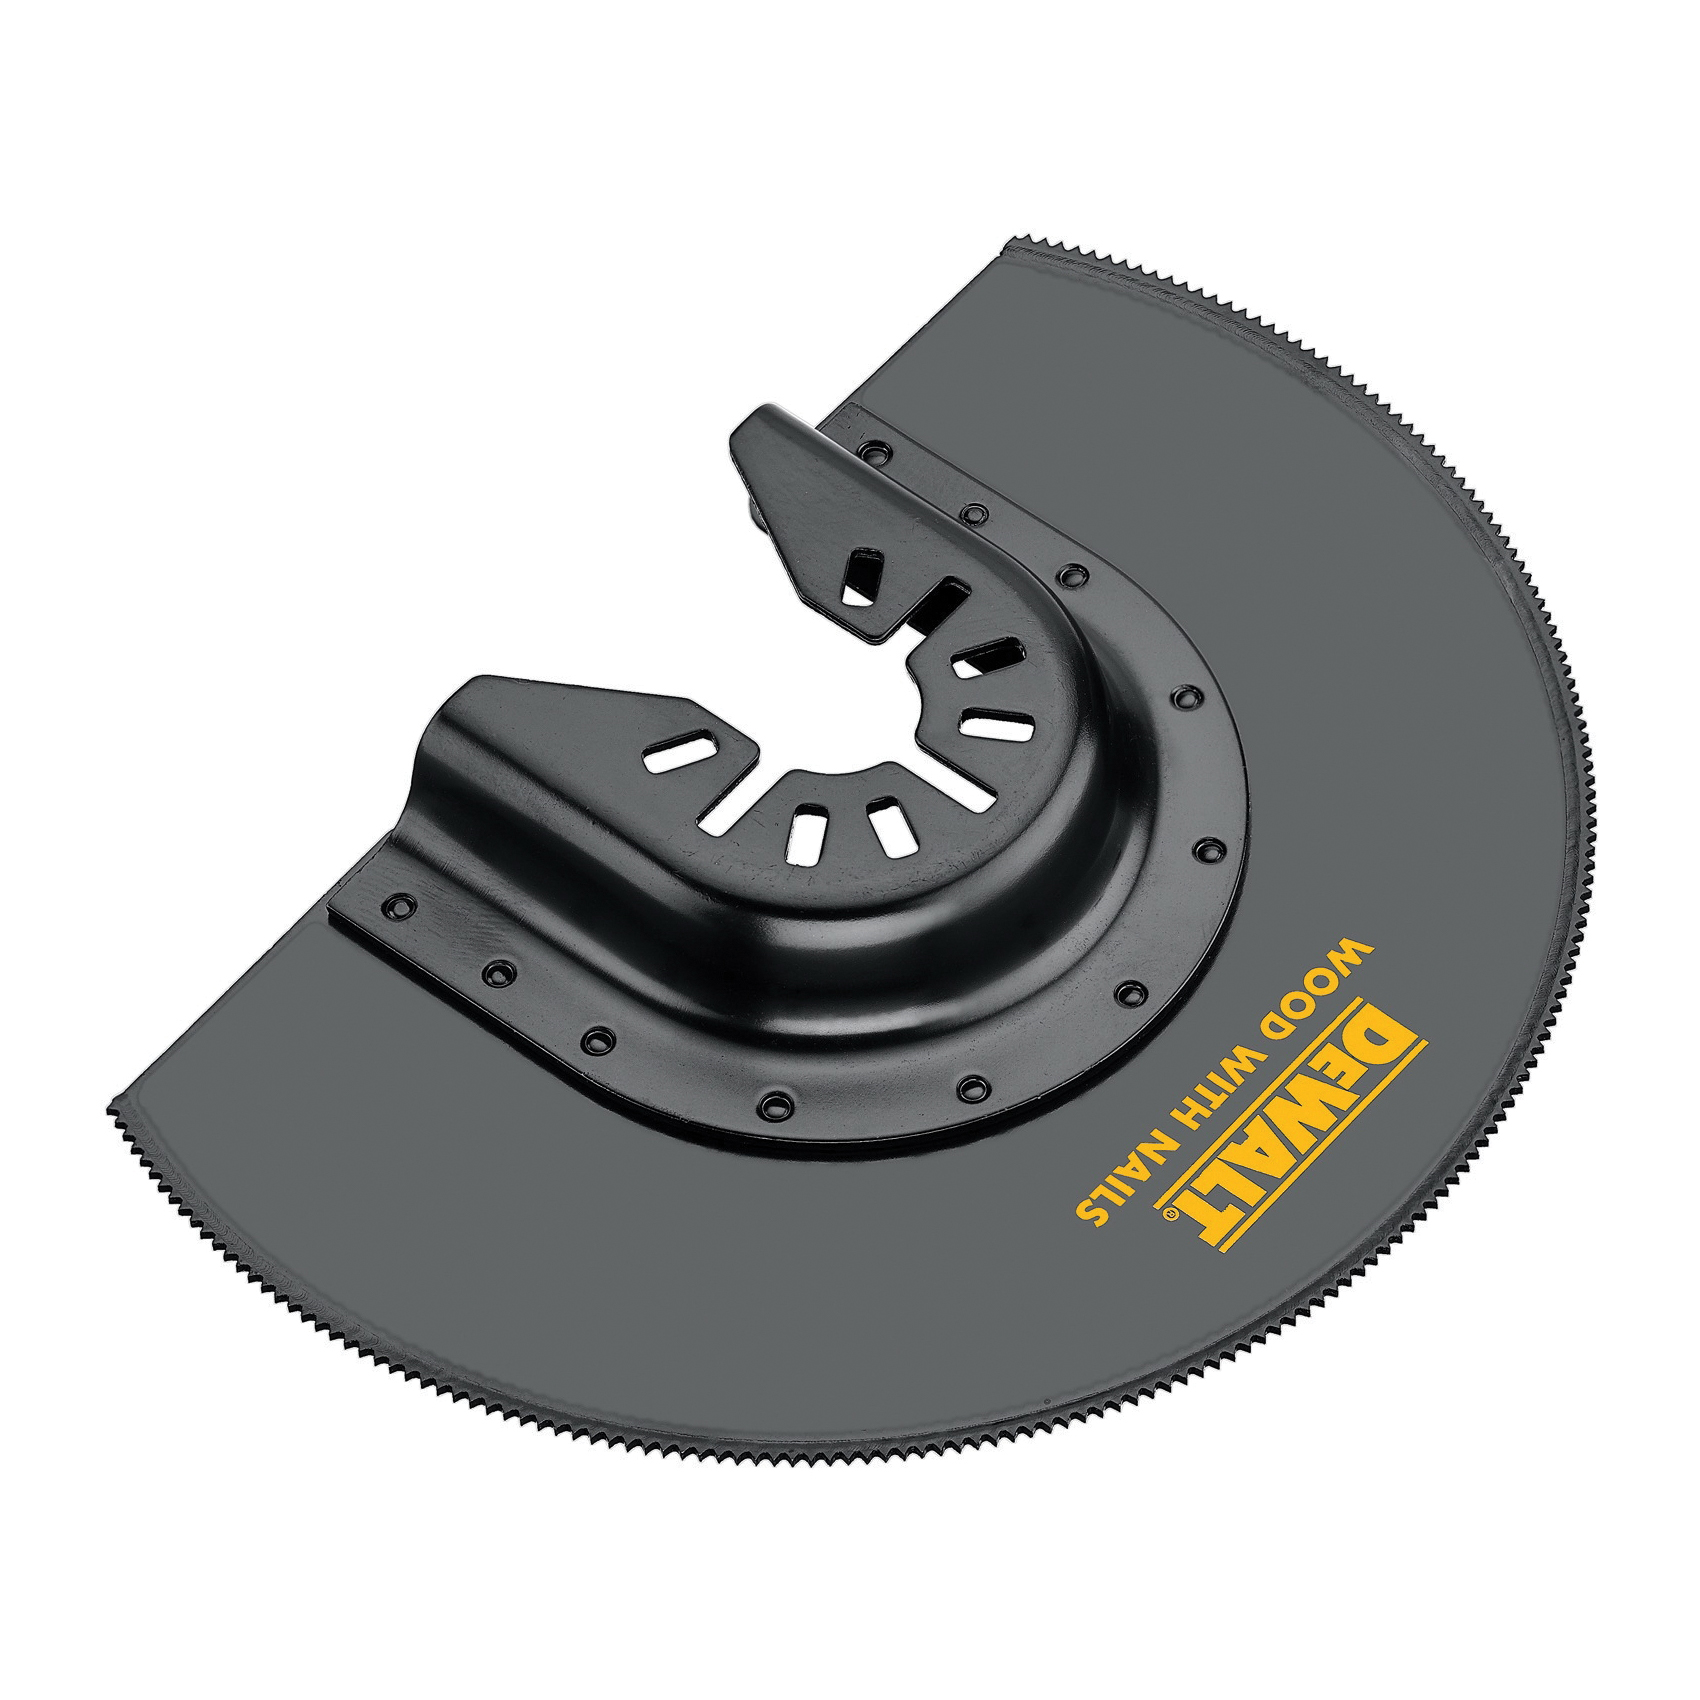 DeWALT® DWA4212 Oscillating Blade, For Use With All Oscillating Tool, 4 in, HSS